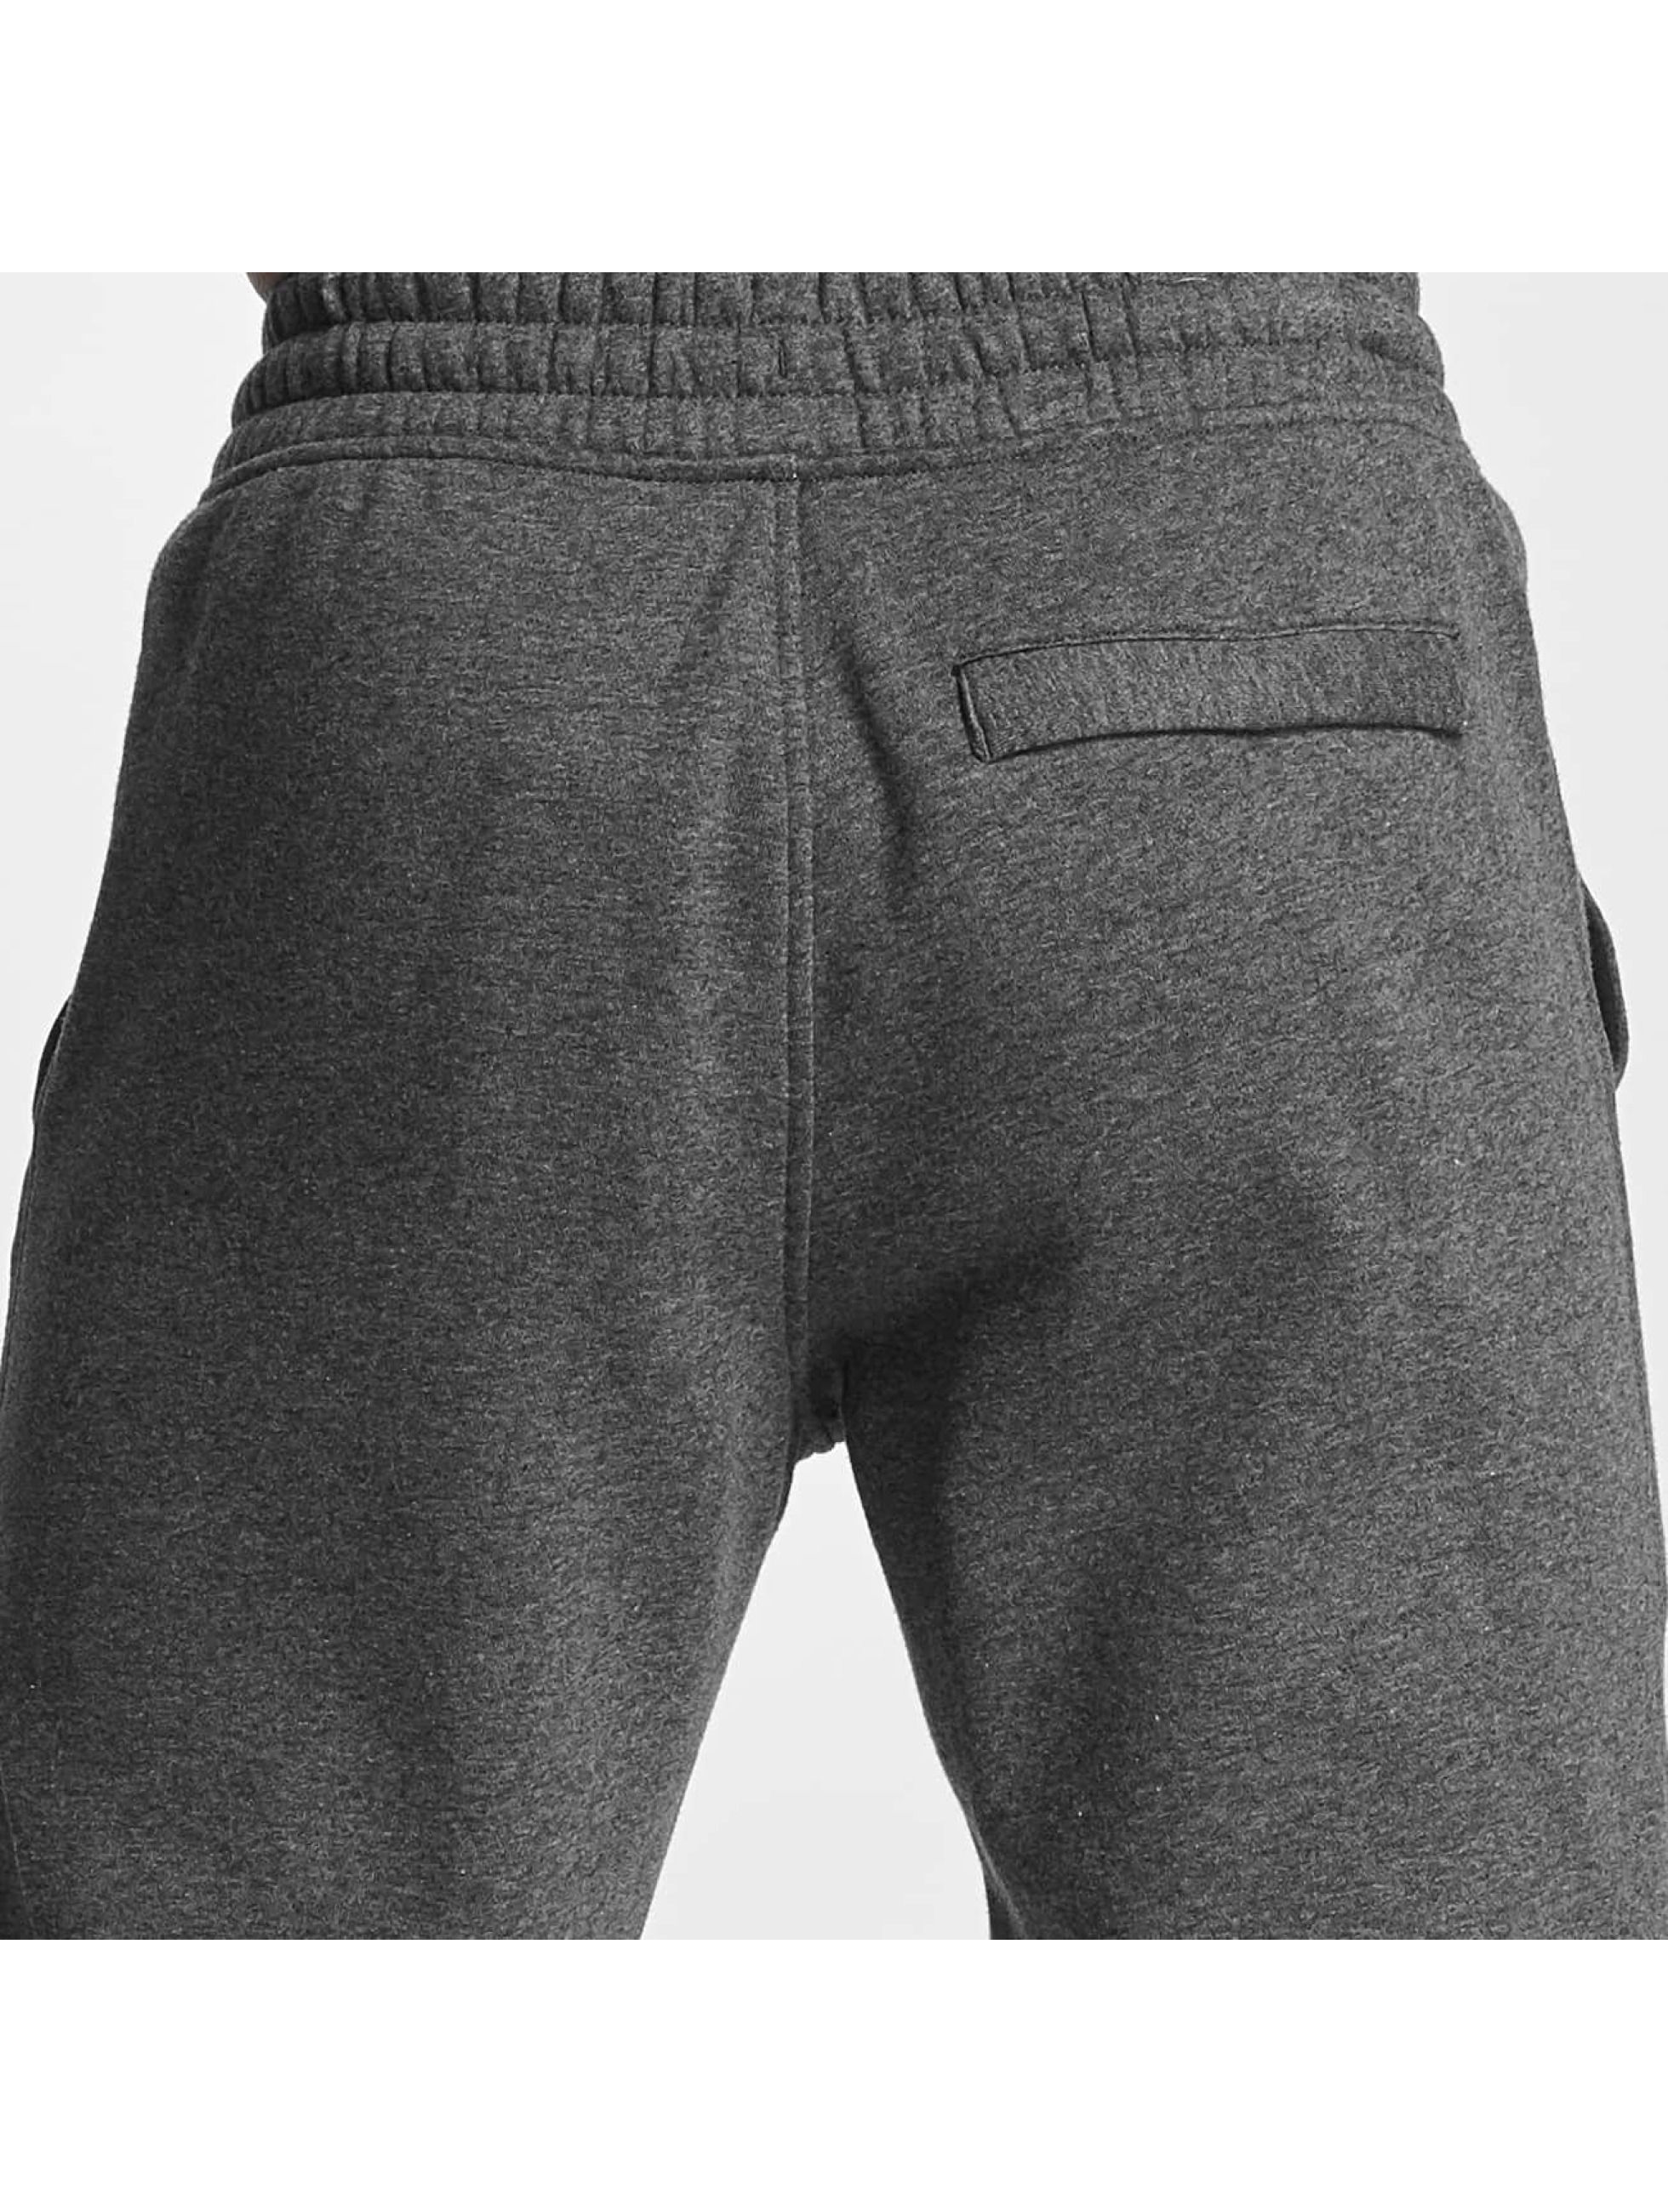 Under Armour Jogginghose Rival grau